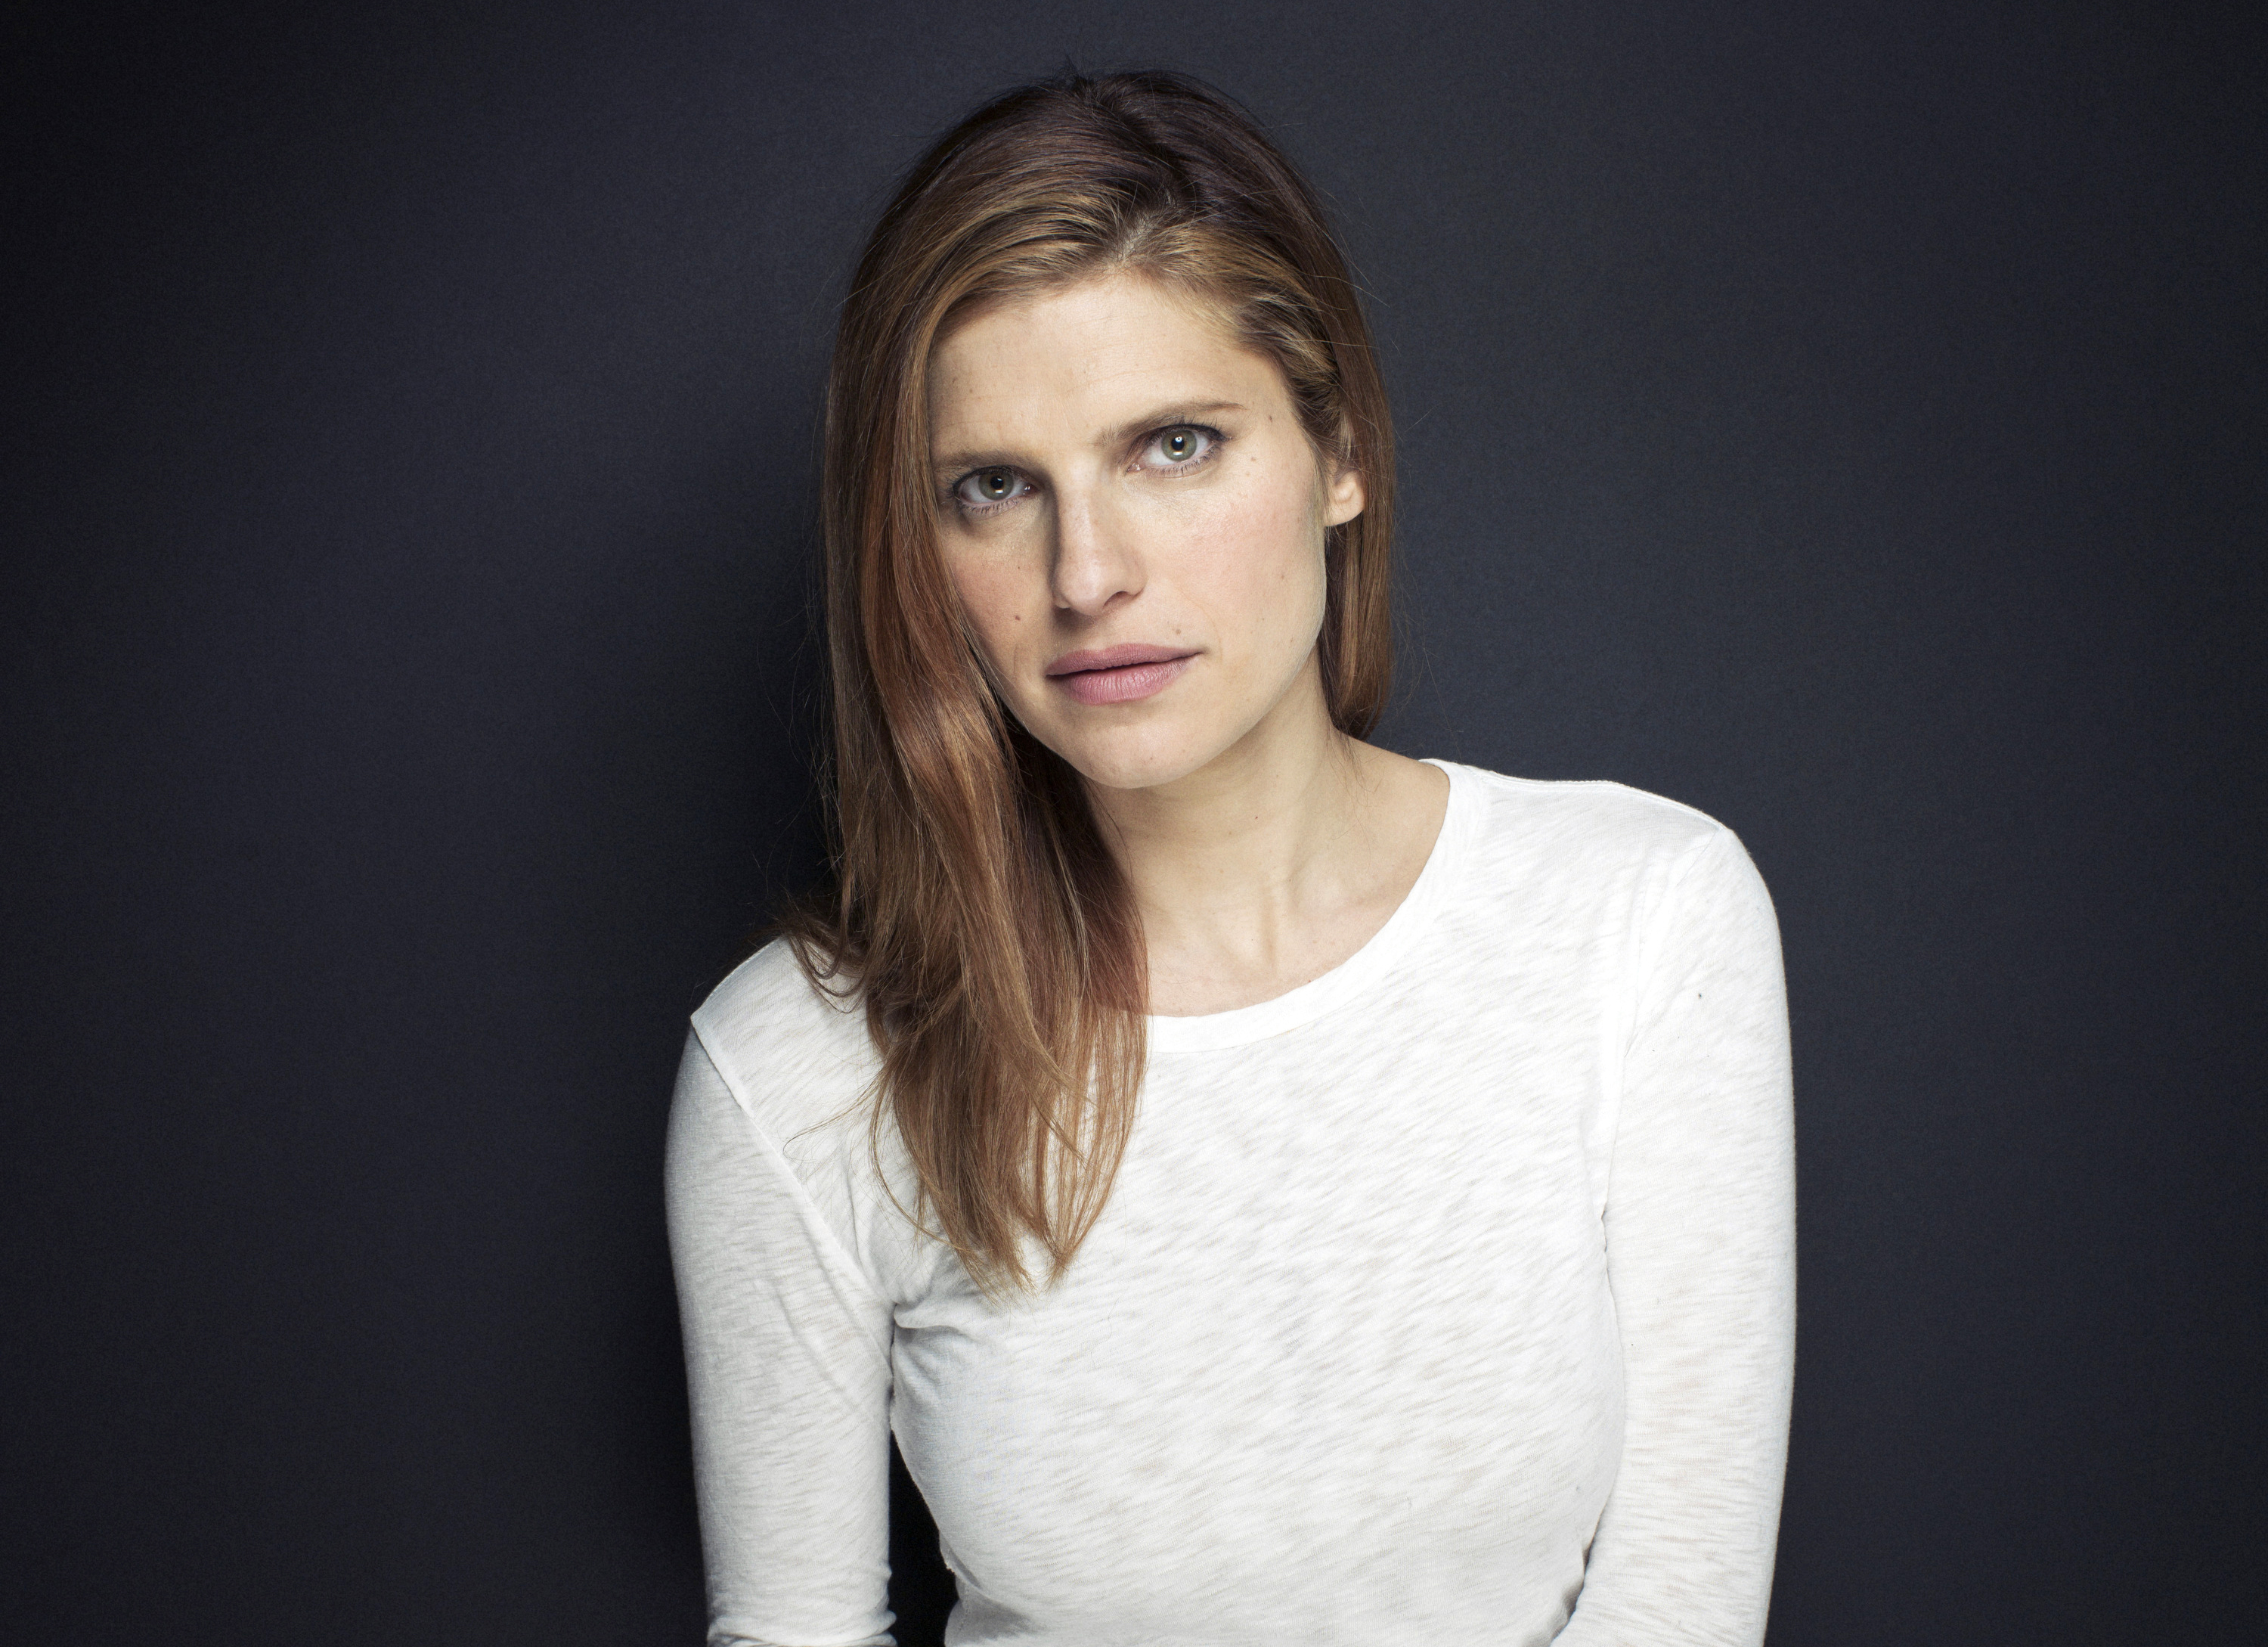 "FILE - In this Jan. 21, 2013 file photo, writer-actress and director Lake Bell from the film ""In A World..."" poses for a portrait during the 2013 Sundance Film Festival in Park City, Utah. The film, which opens Friday, Aug. 9, is the directorial debut for Bell, the 34-year-old actress of TV shows like ""Boston Legal,"" films like ""No Strings Attached"" and, increasingly, comedy like Rob Corddry's ""Children's Hospital."" (Photo by Victoria Will/Invision/AP, File)"